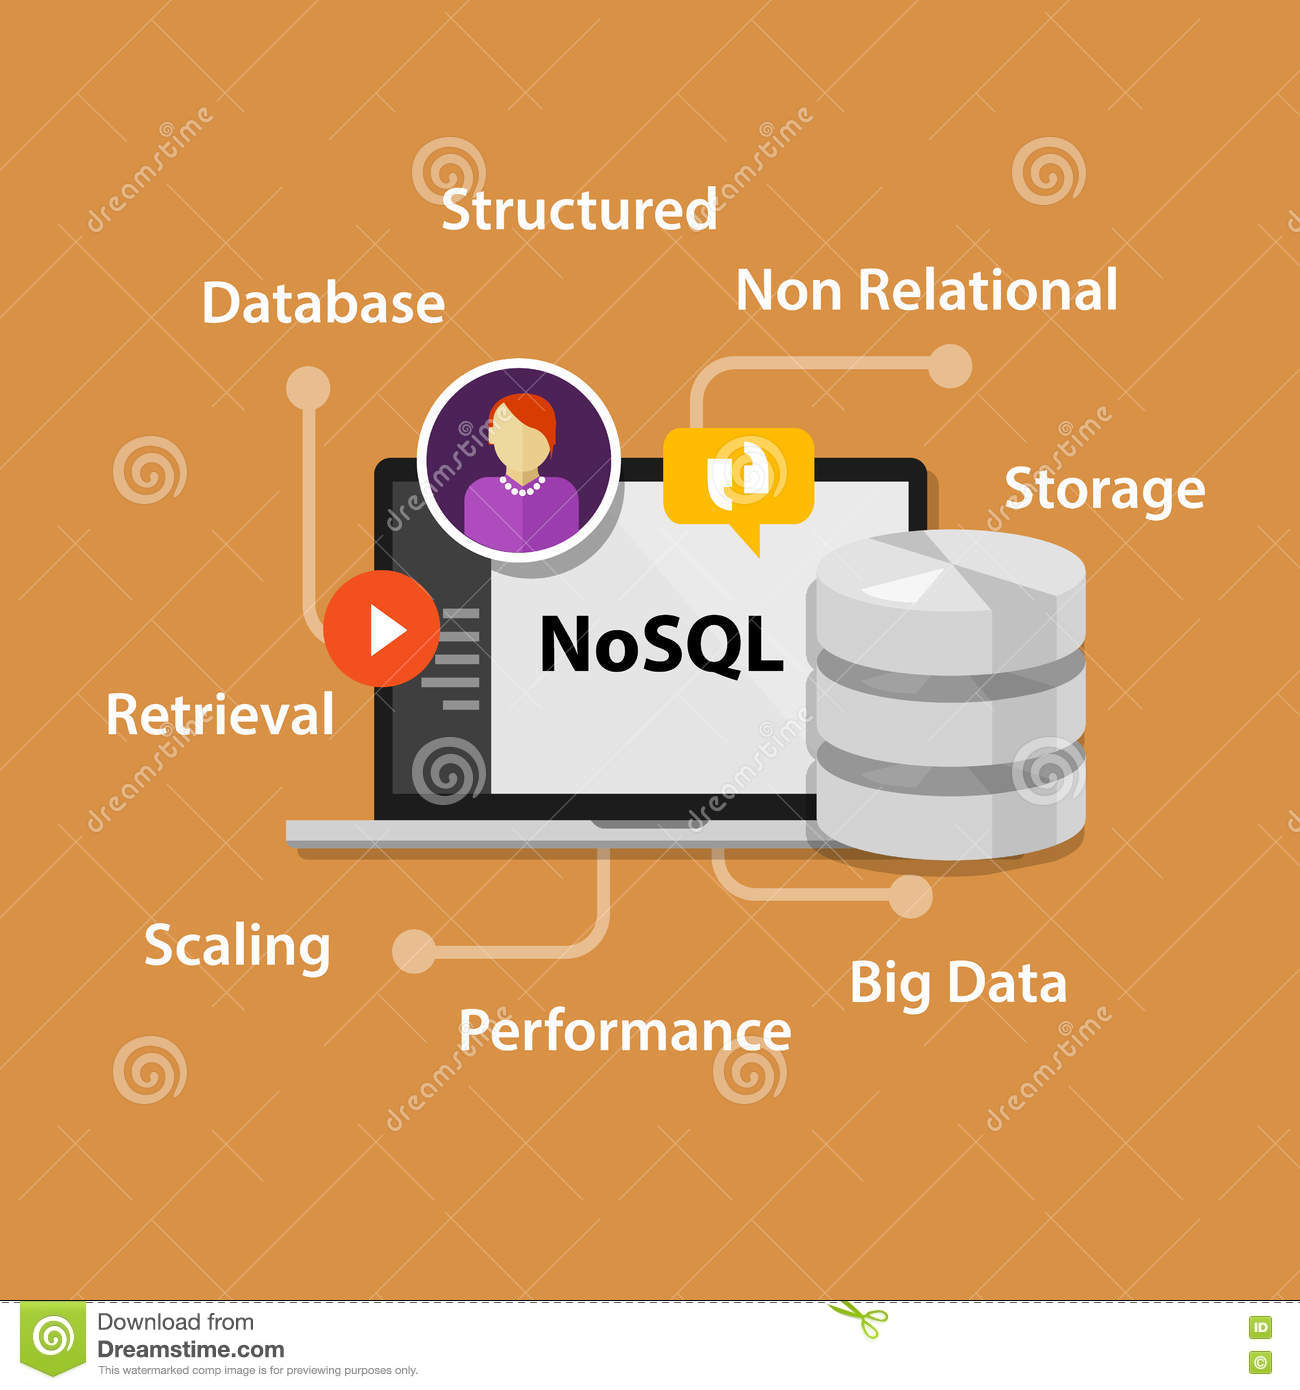 NoSQL Non Relational Database Concept Stock Vector - Image: 75659765